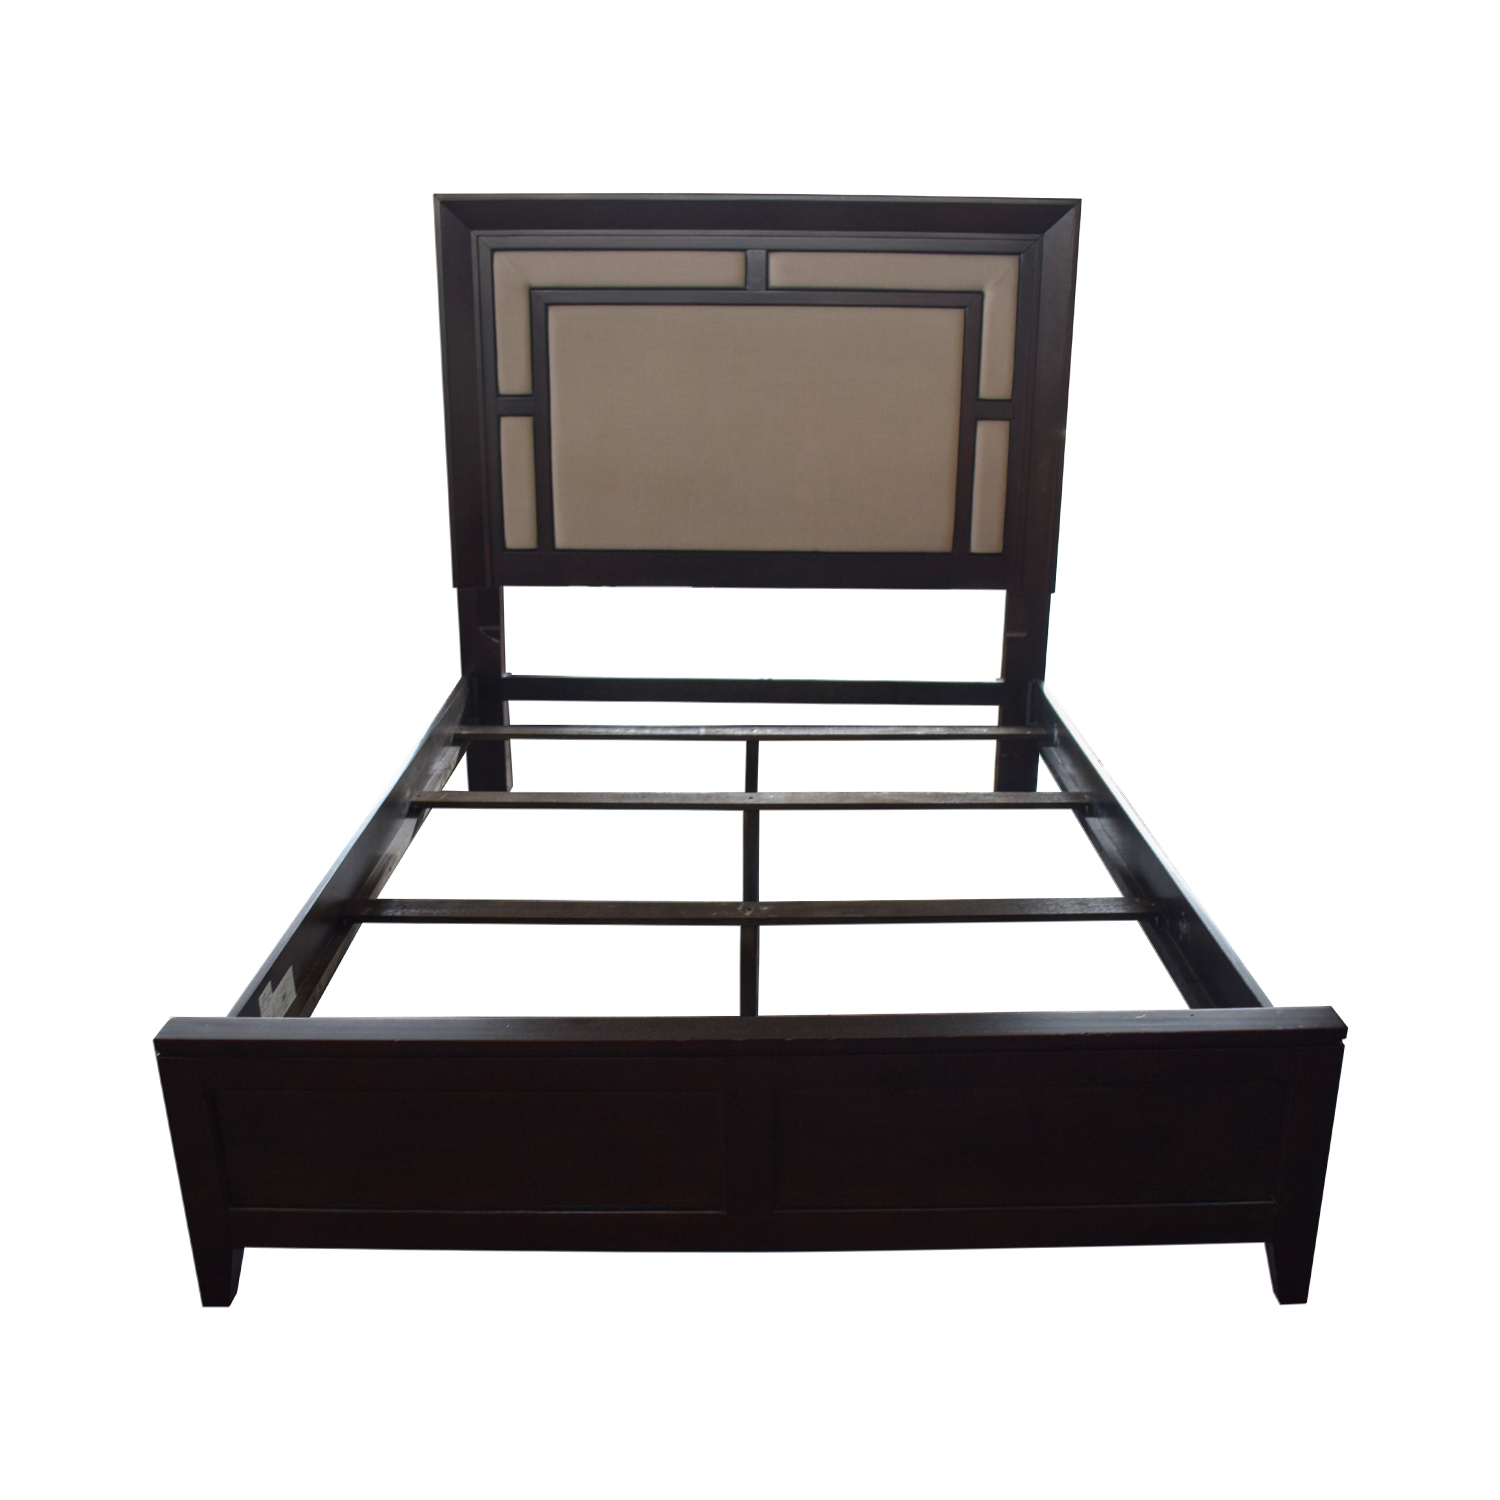 Raymour & Flanigan Raymour & Flanigan Cadence Queen Platform Bed for sale